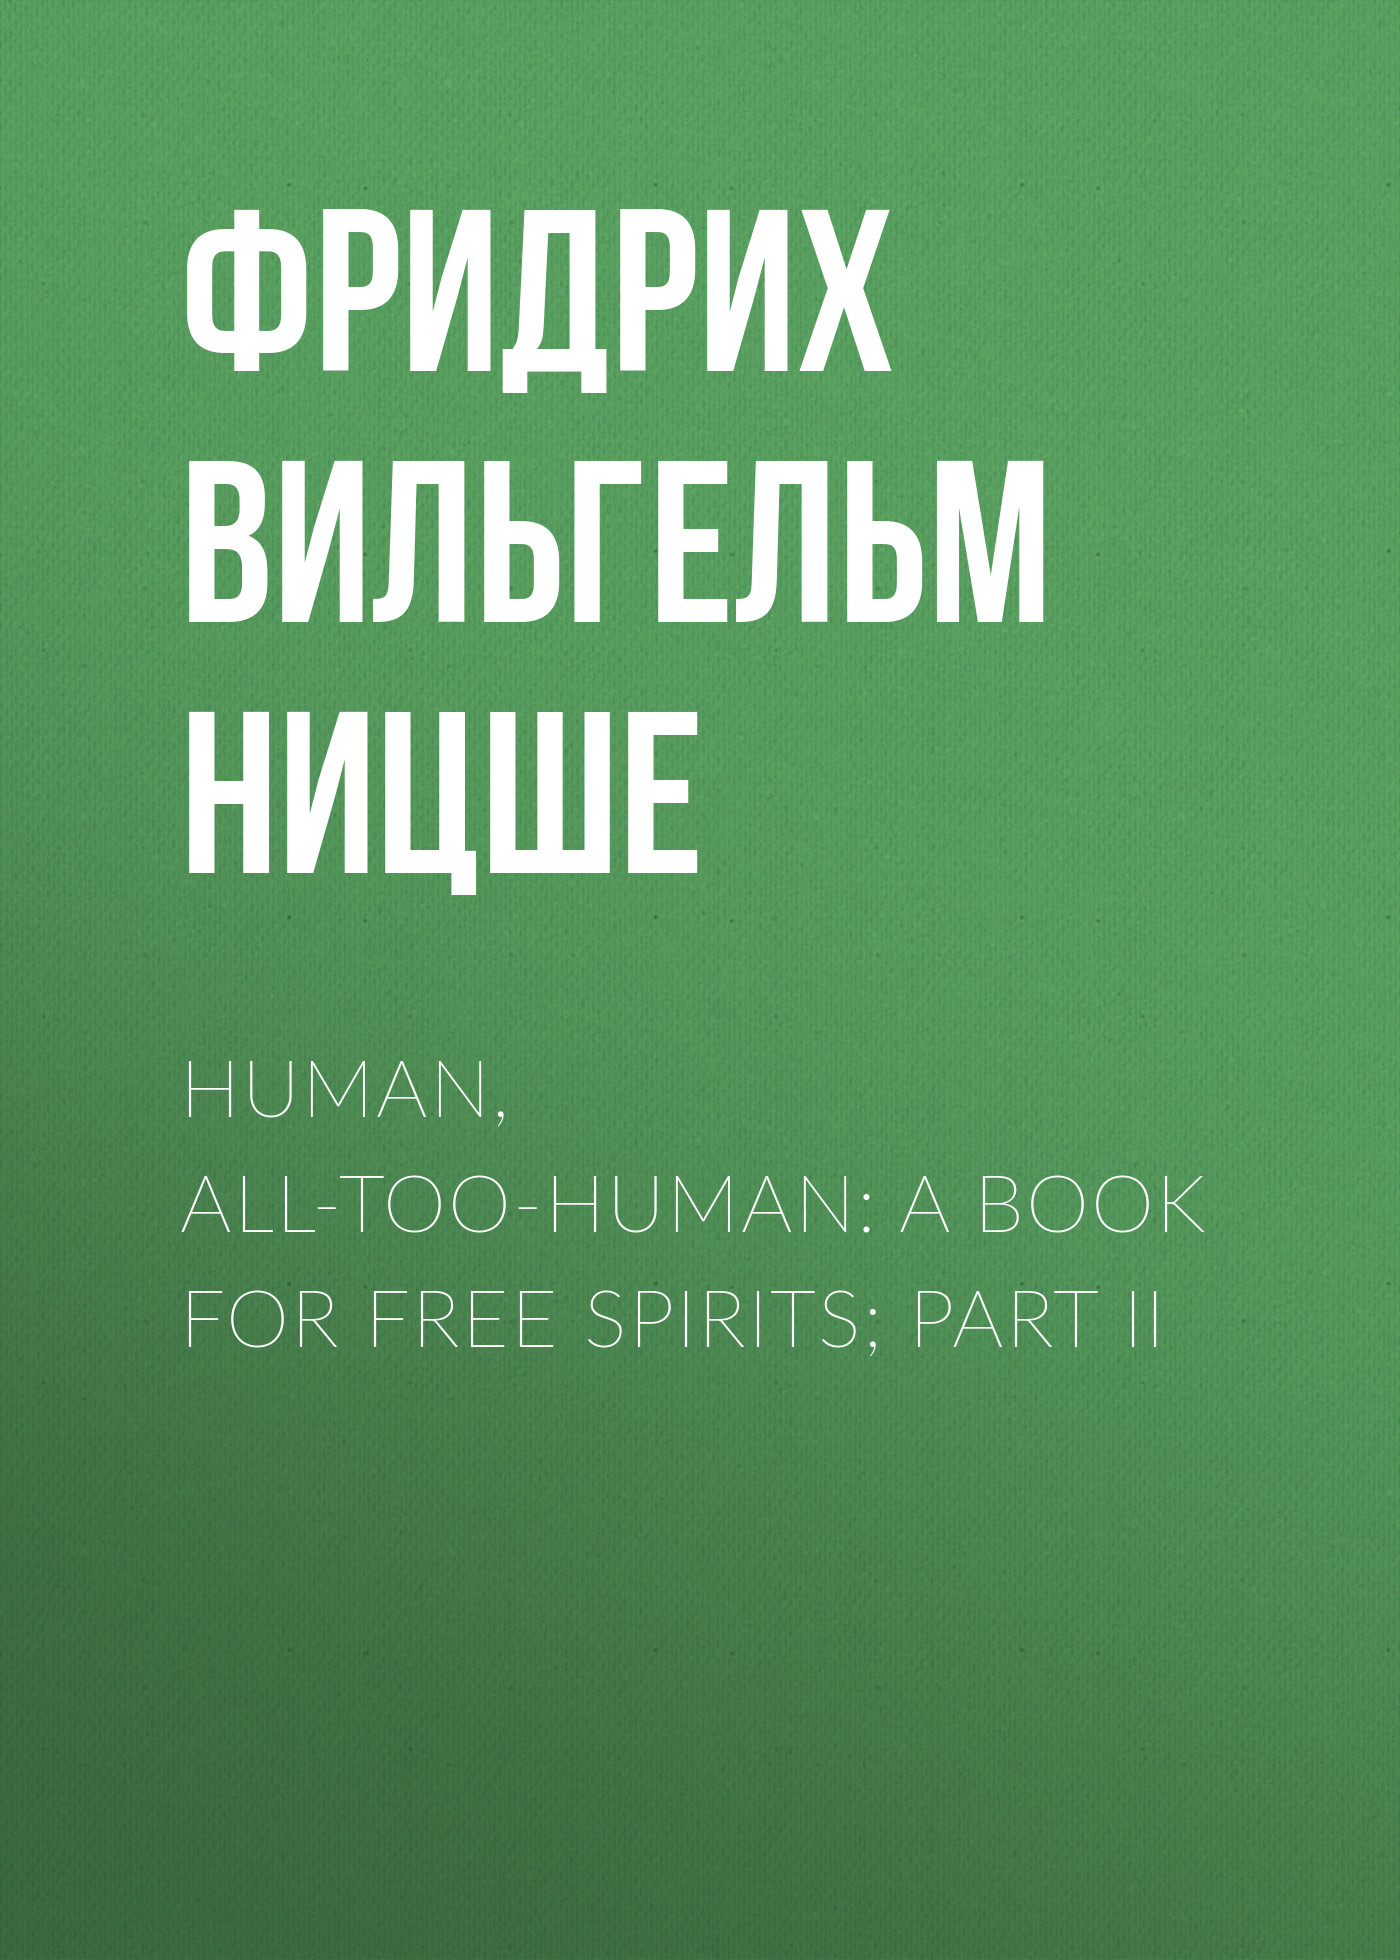 Фридрих Вильгельм Ницше Human, All-Too-Human: A Book For Free Spirits; Part II